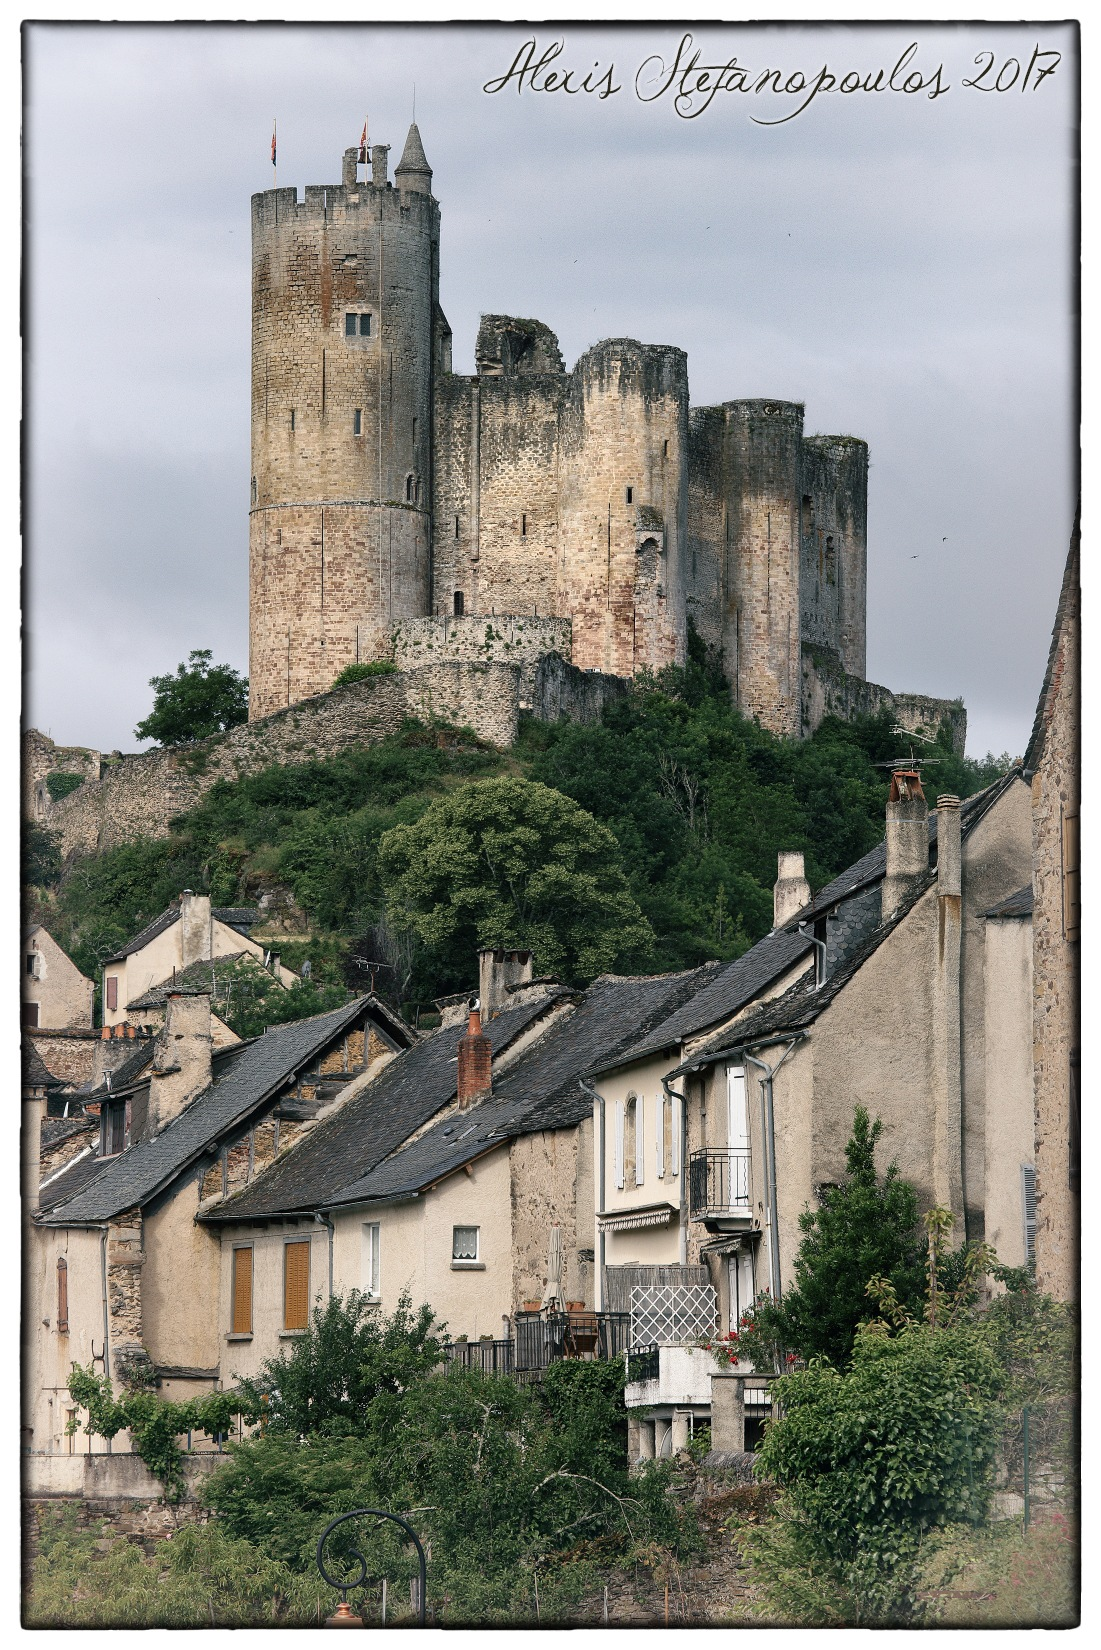 The old city of NAJAC by Expo'Z